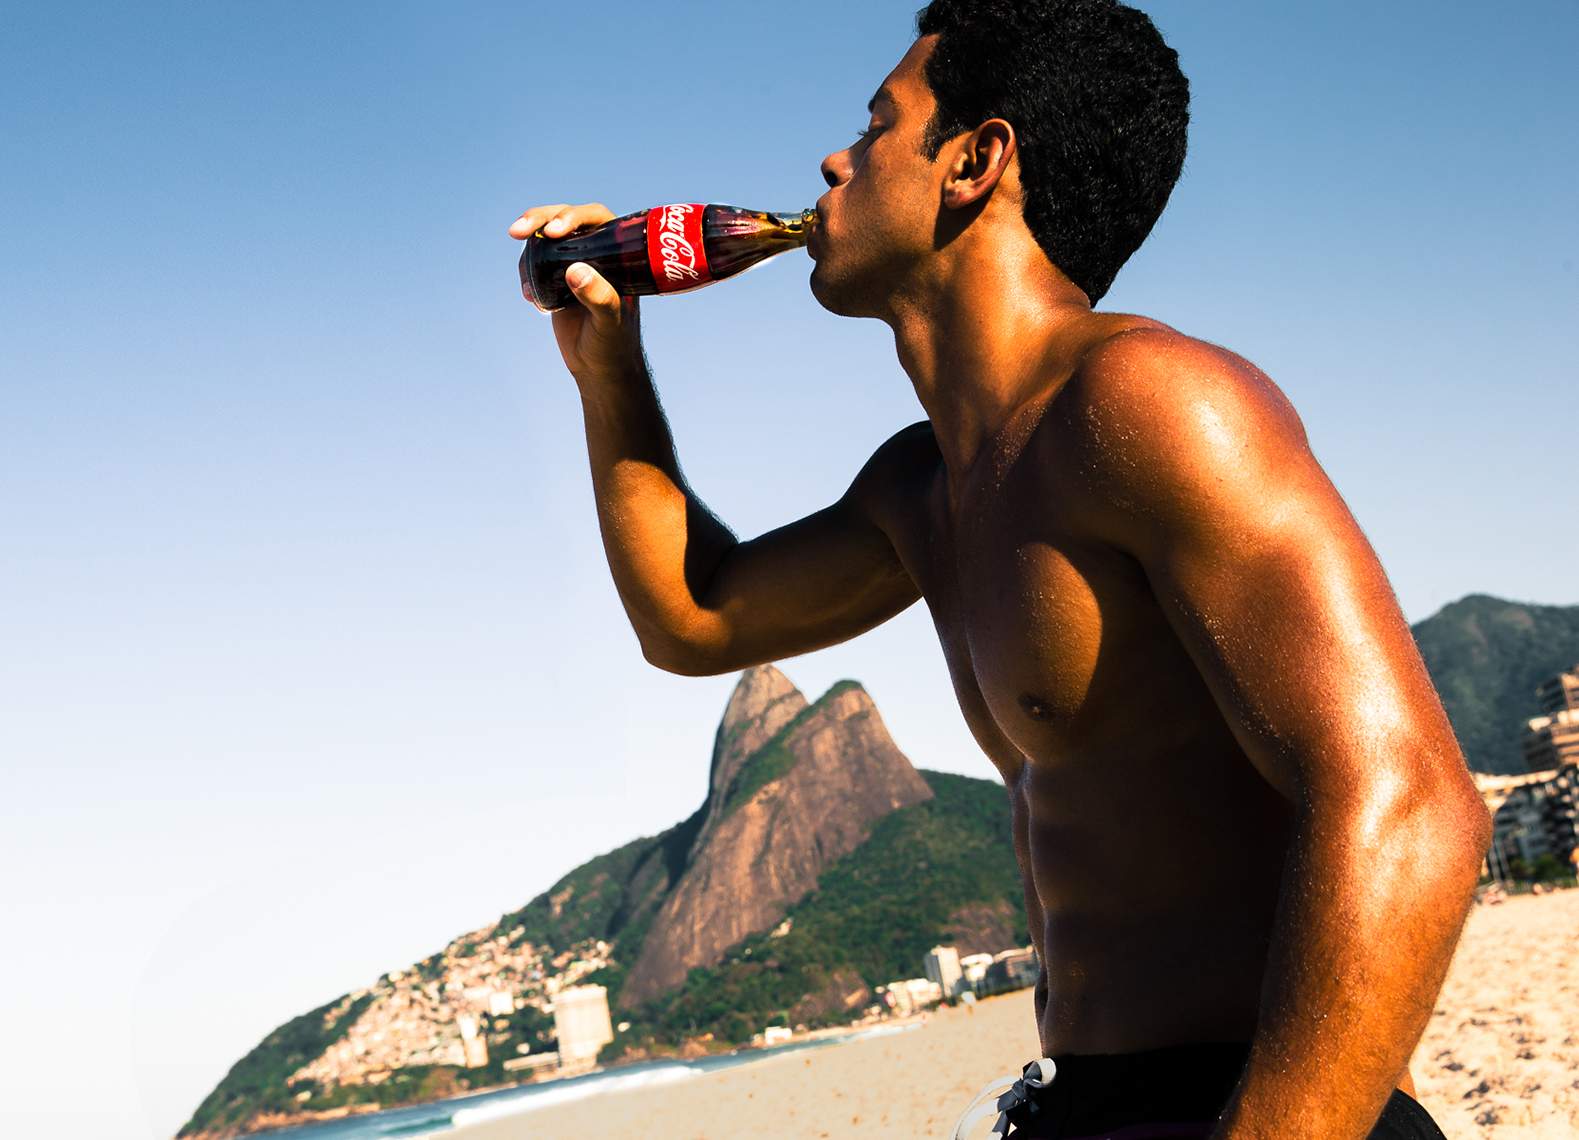 Reinsdorf-Advertising-Coke-Lifestyle-Brazil-World-Cup-Action-001